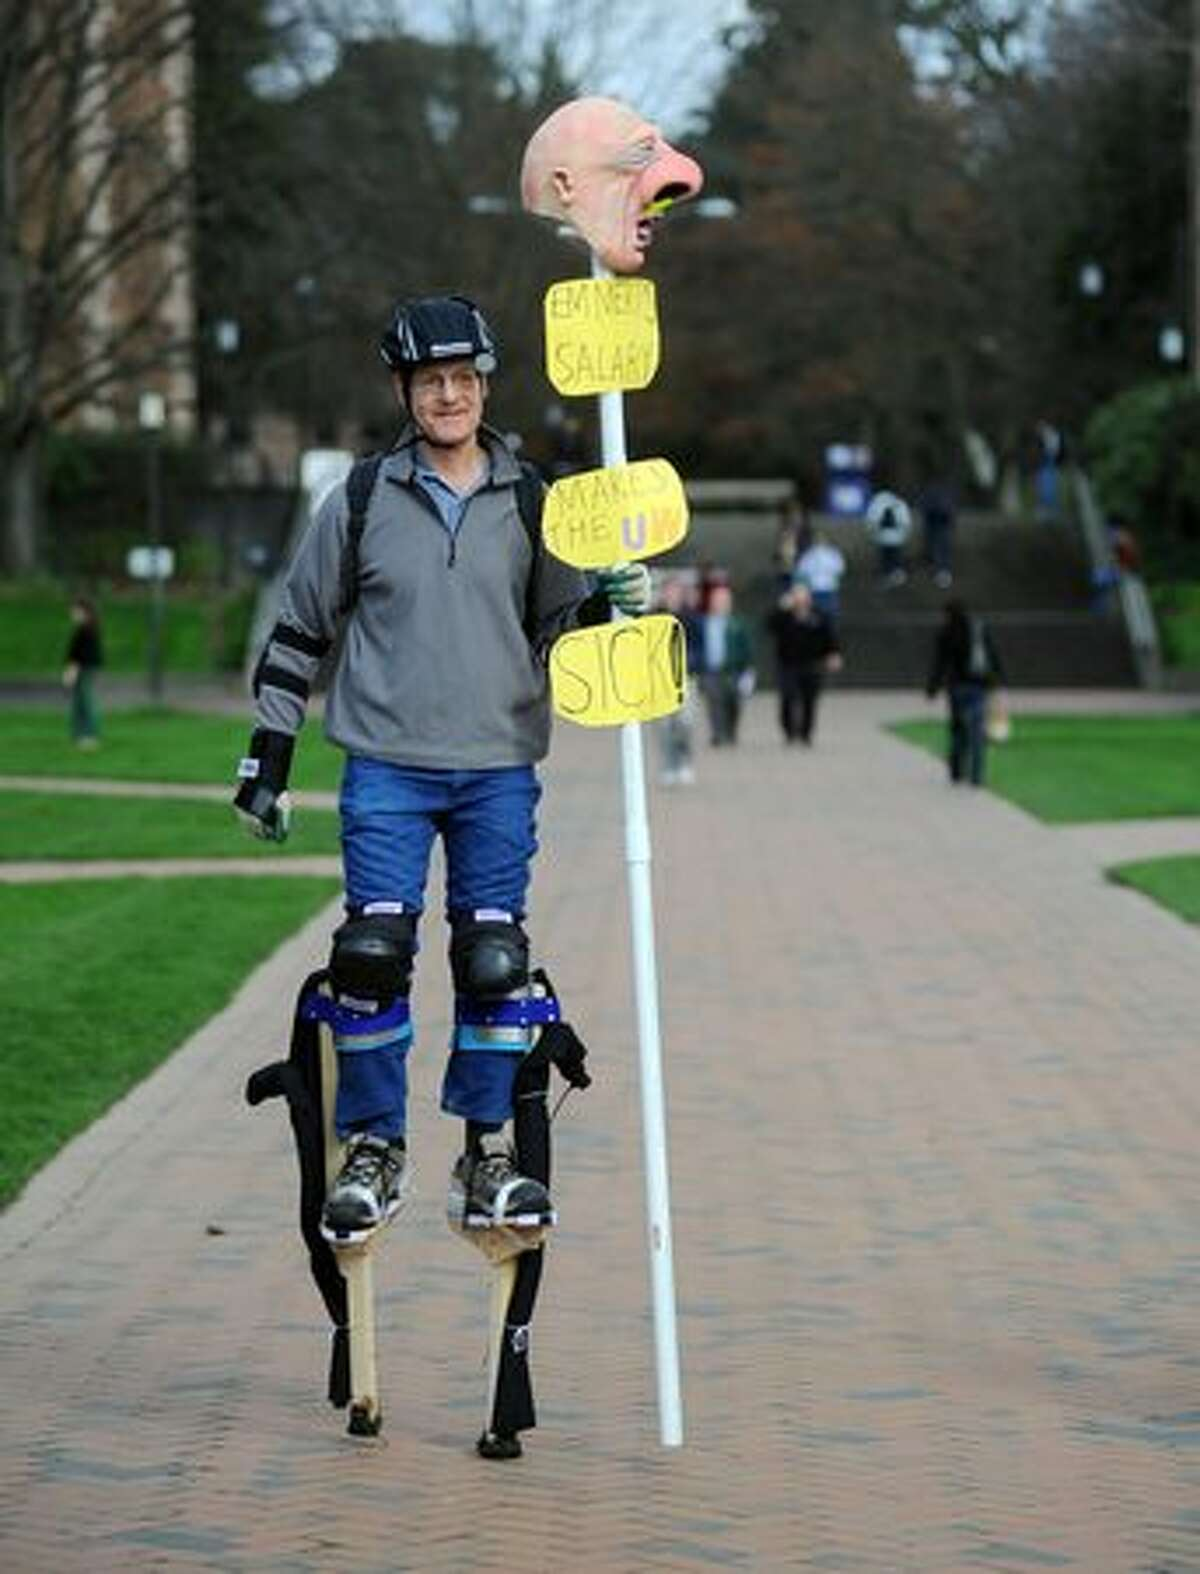 Jay Herzmark, a member of Local 1488, the union representing the University of Washington in the strike against increased tuitions and upcoming state budget cuts for colleges, walks around on stilts.